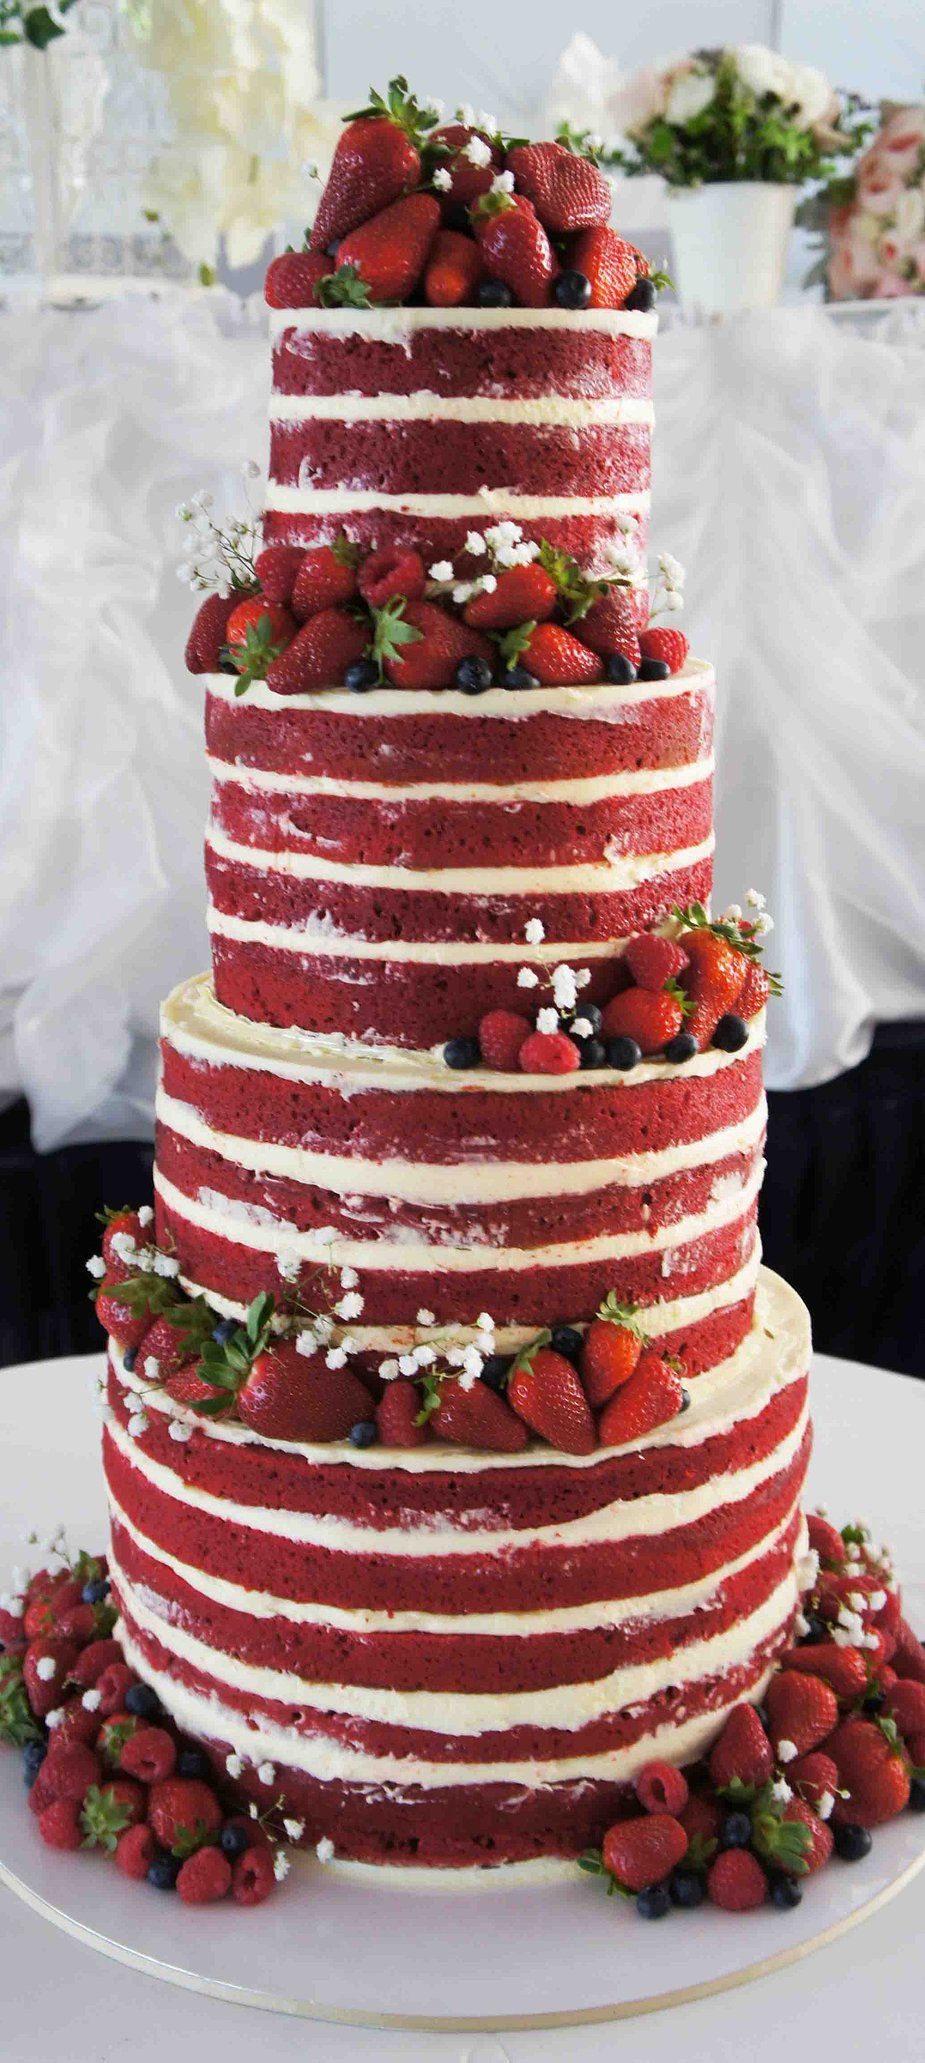 red velvet wedding cake recipe uk ruby wedding anniversary cake velvet cake 19164